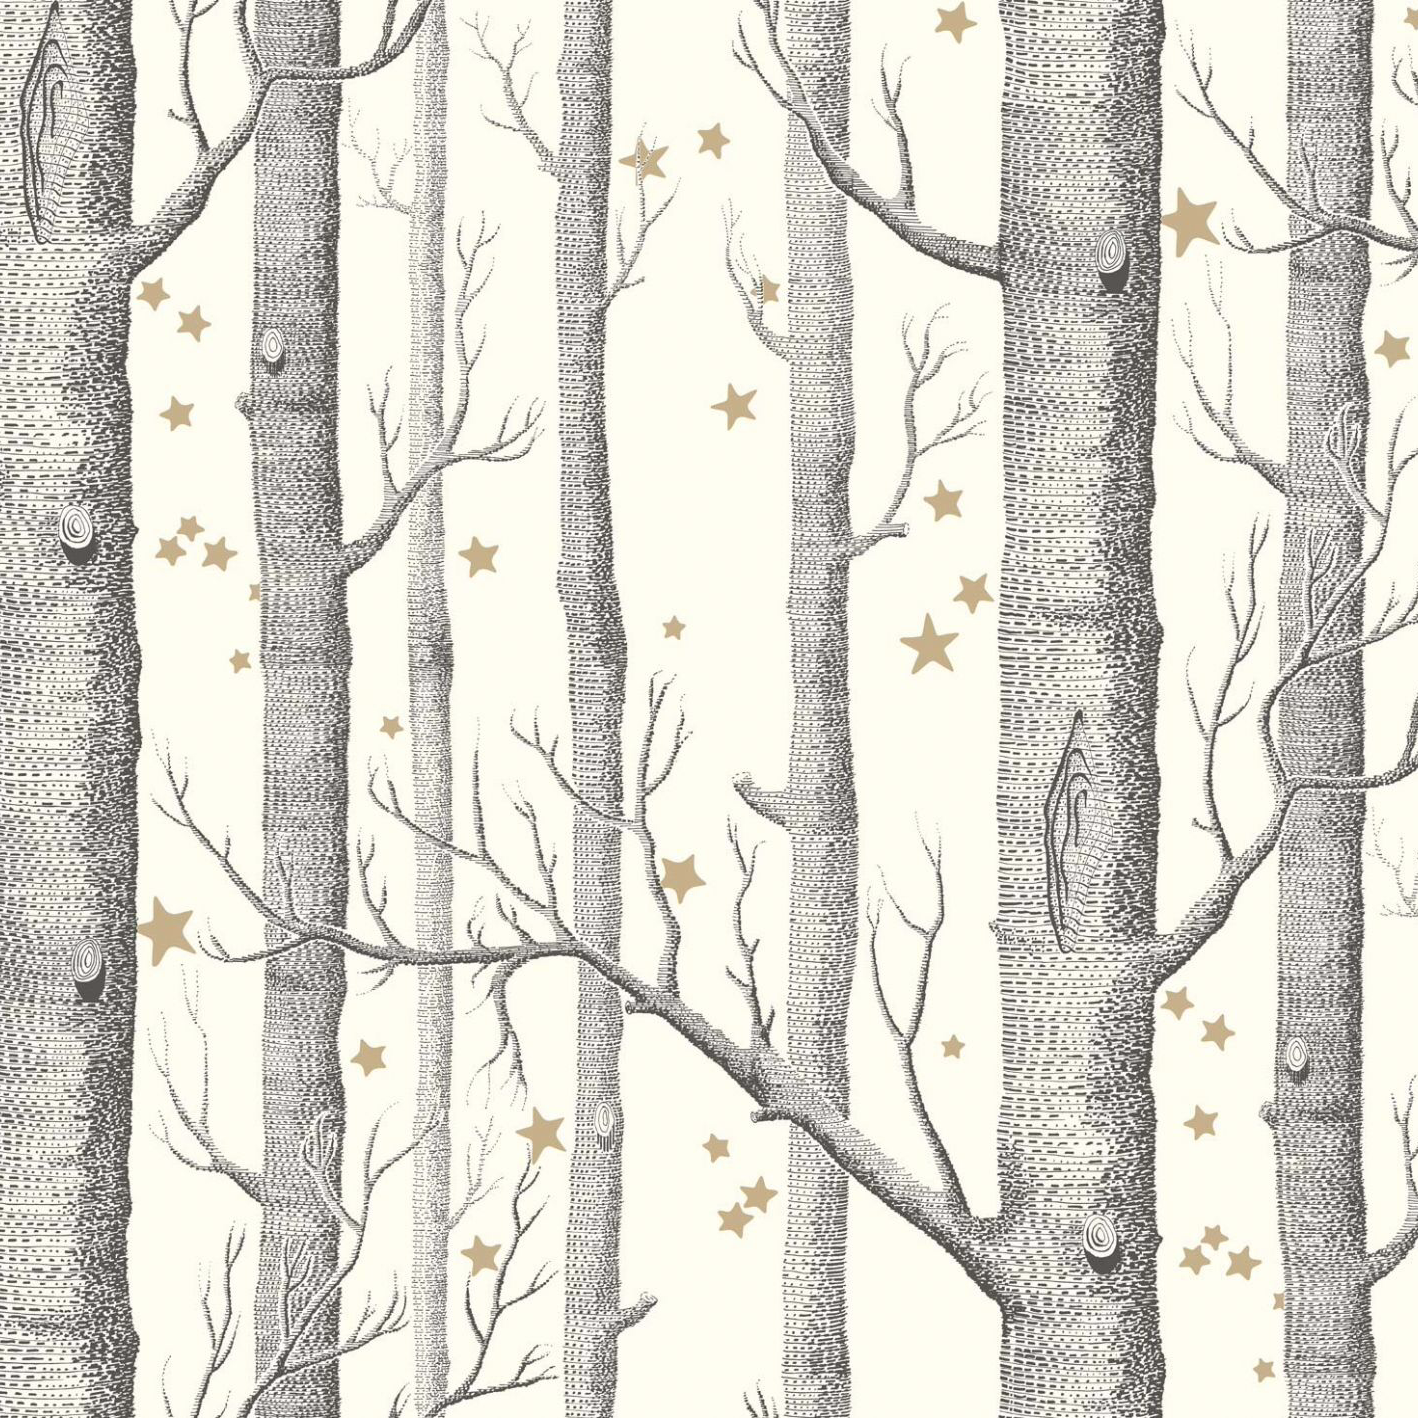 Cole & Son Woods and Stars Wallpaper 103 11050